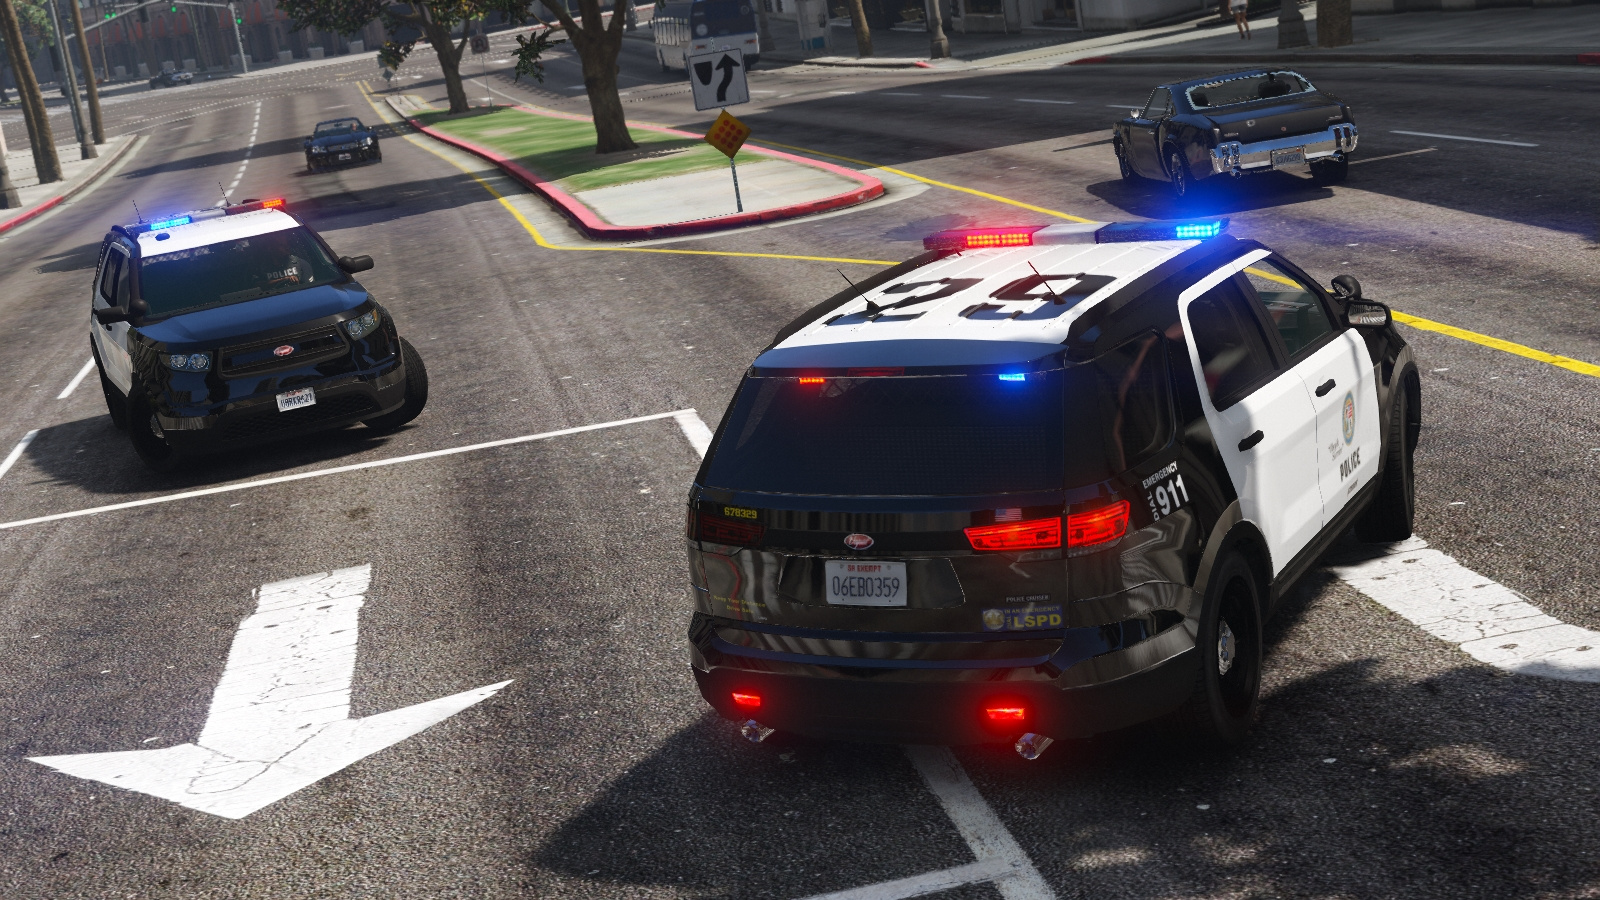 2012 Vapid Scout Police Utility [Add-on | Mapped] - GTA5-Mods com